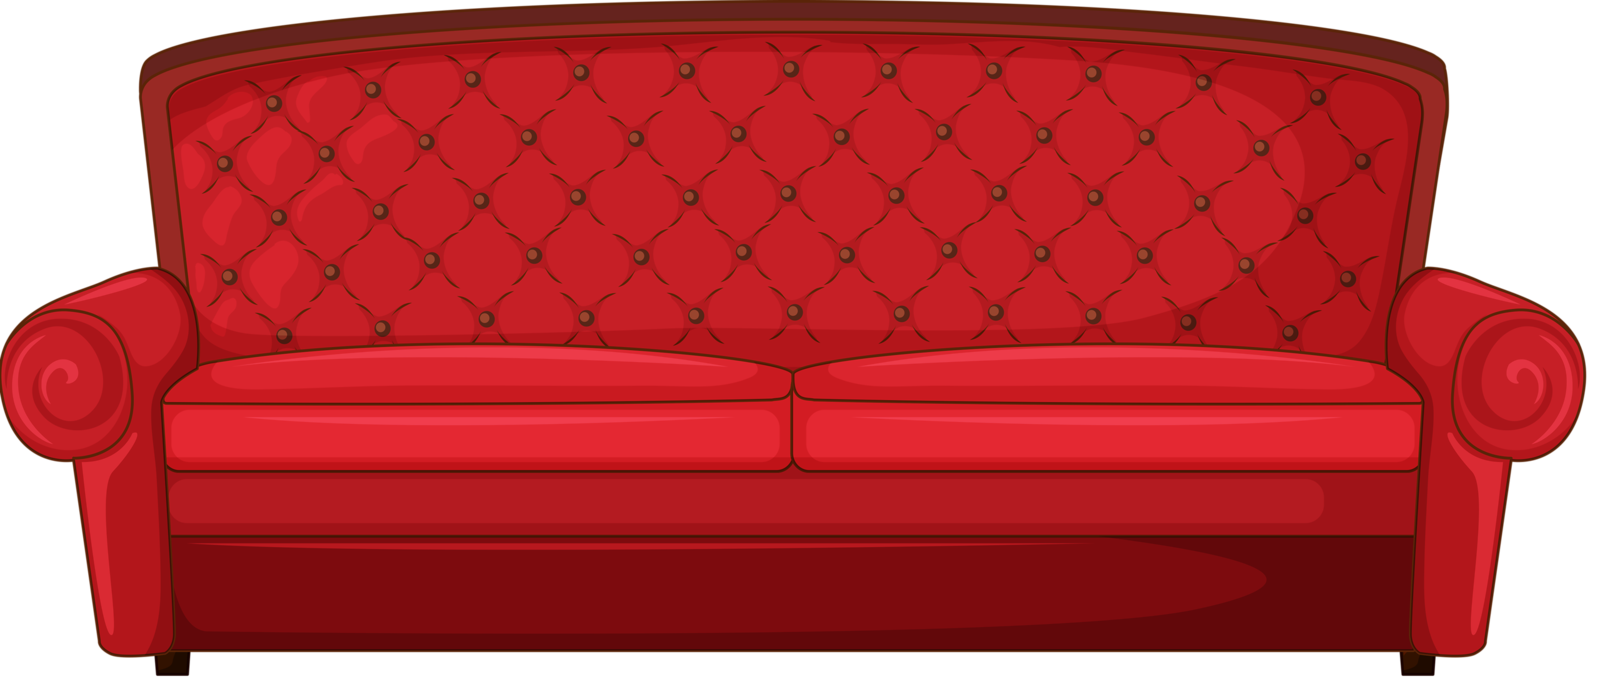 Couch clipart household furniture. Ch b home pinterest